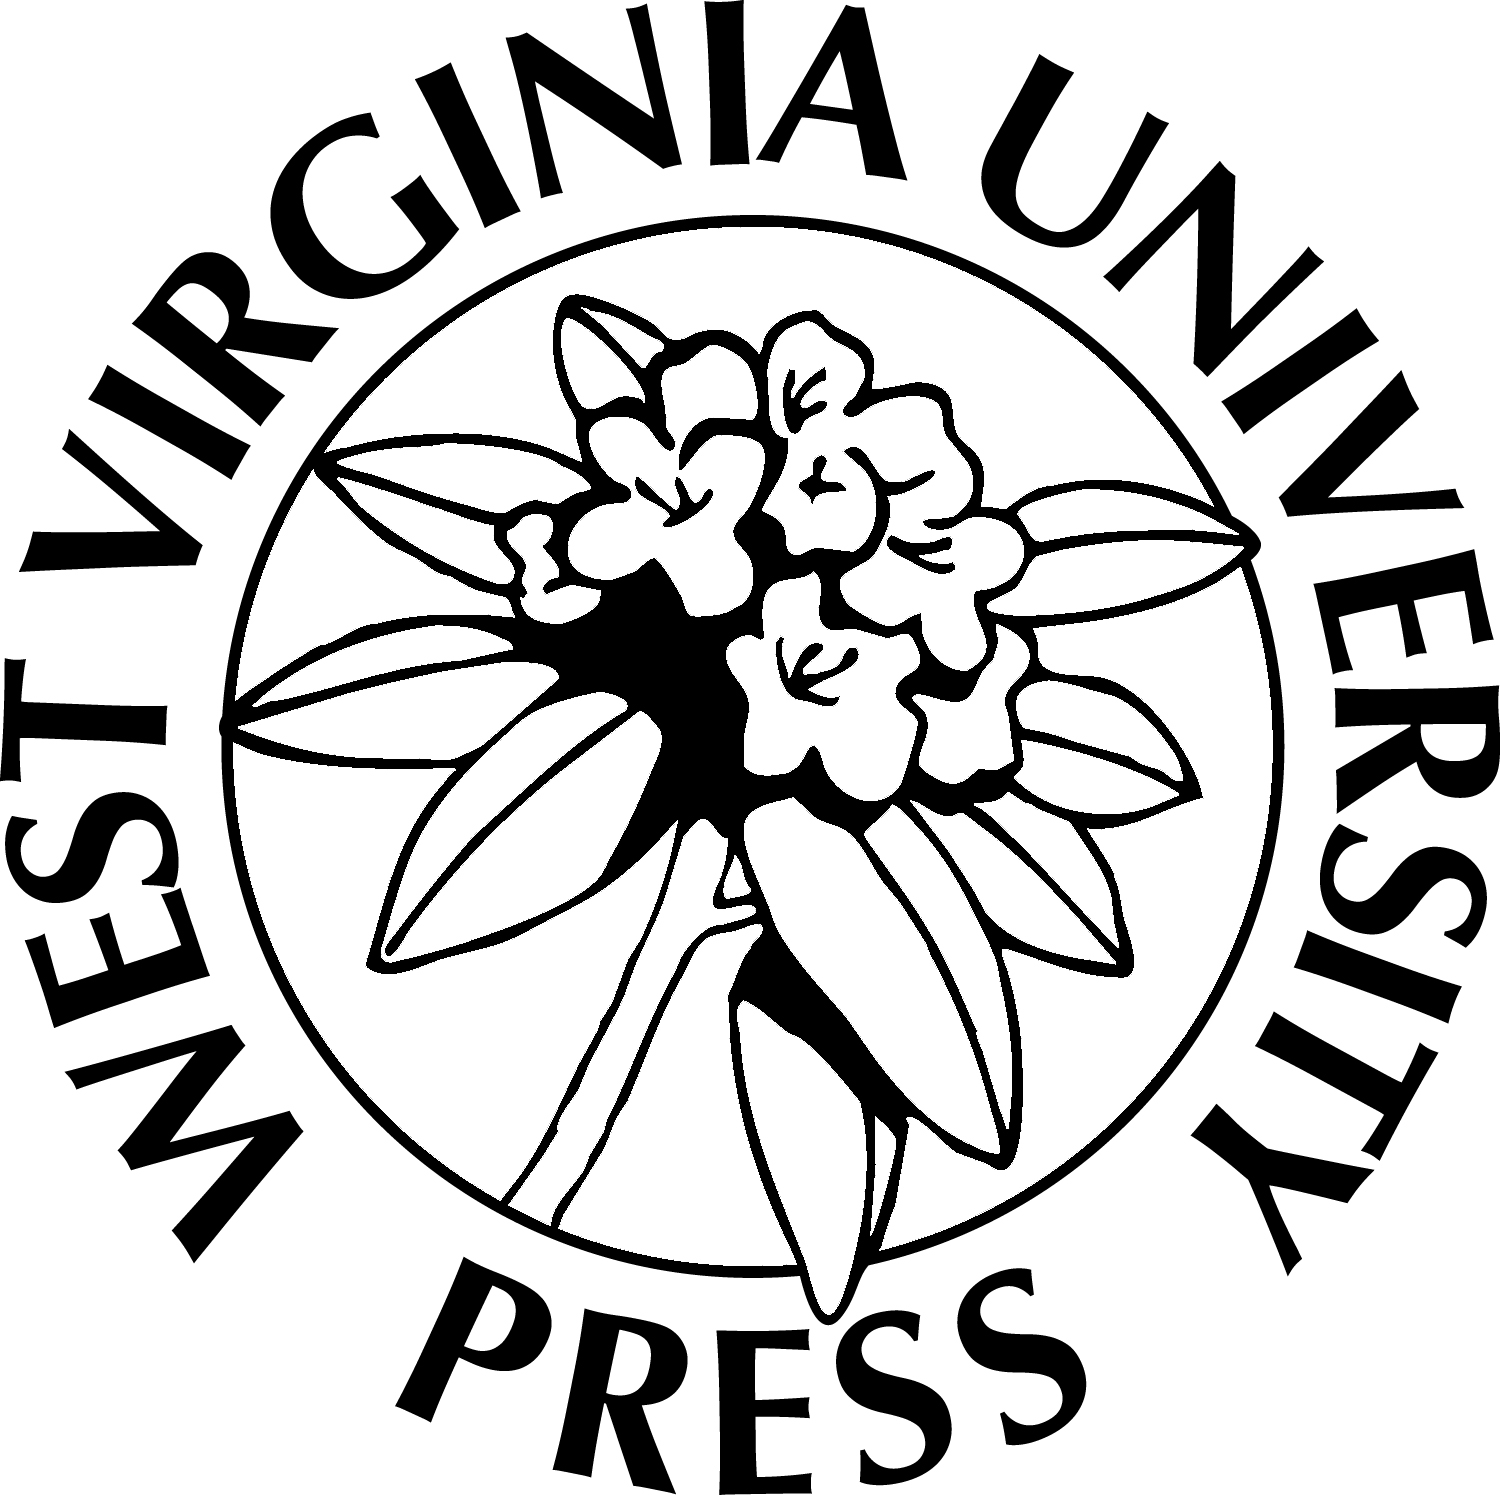 UBC - Agency Logos - West Virginia University Press logo